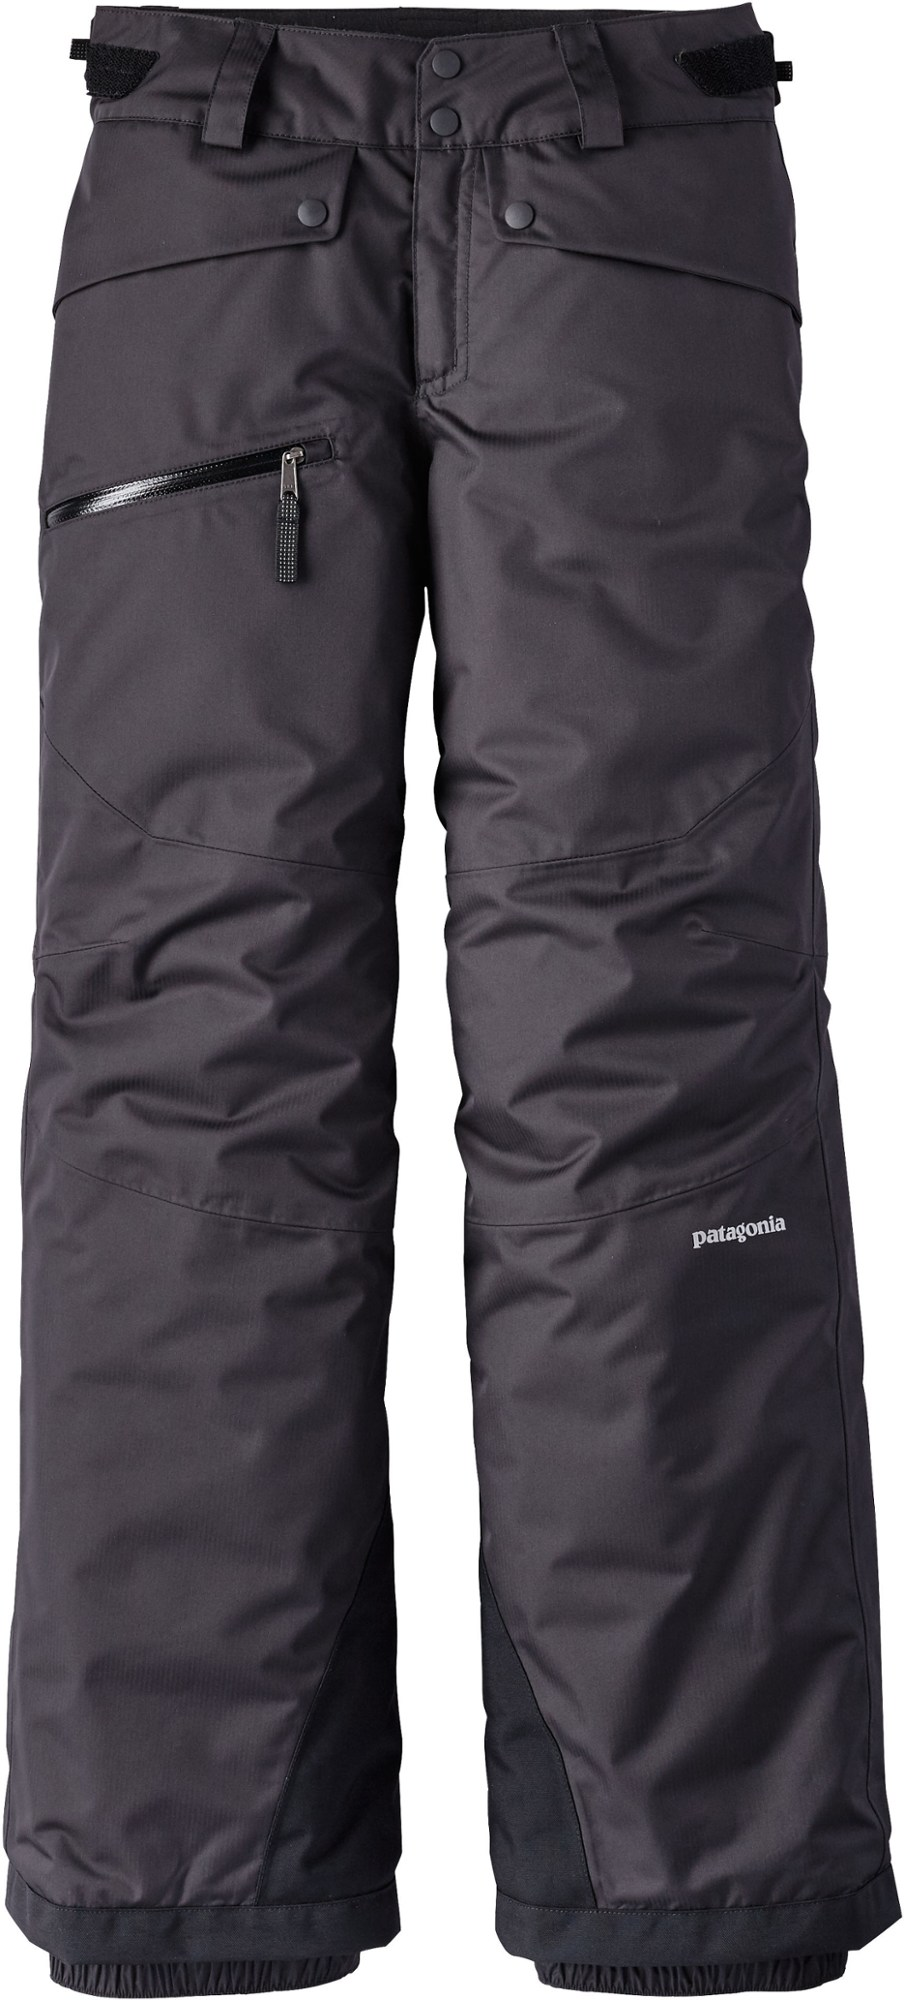 Patagonia Snowbelle Insulated Snow Pants - Girls'